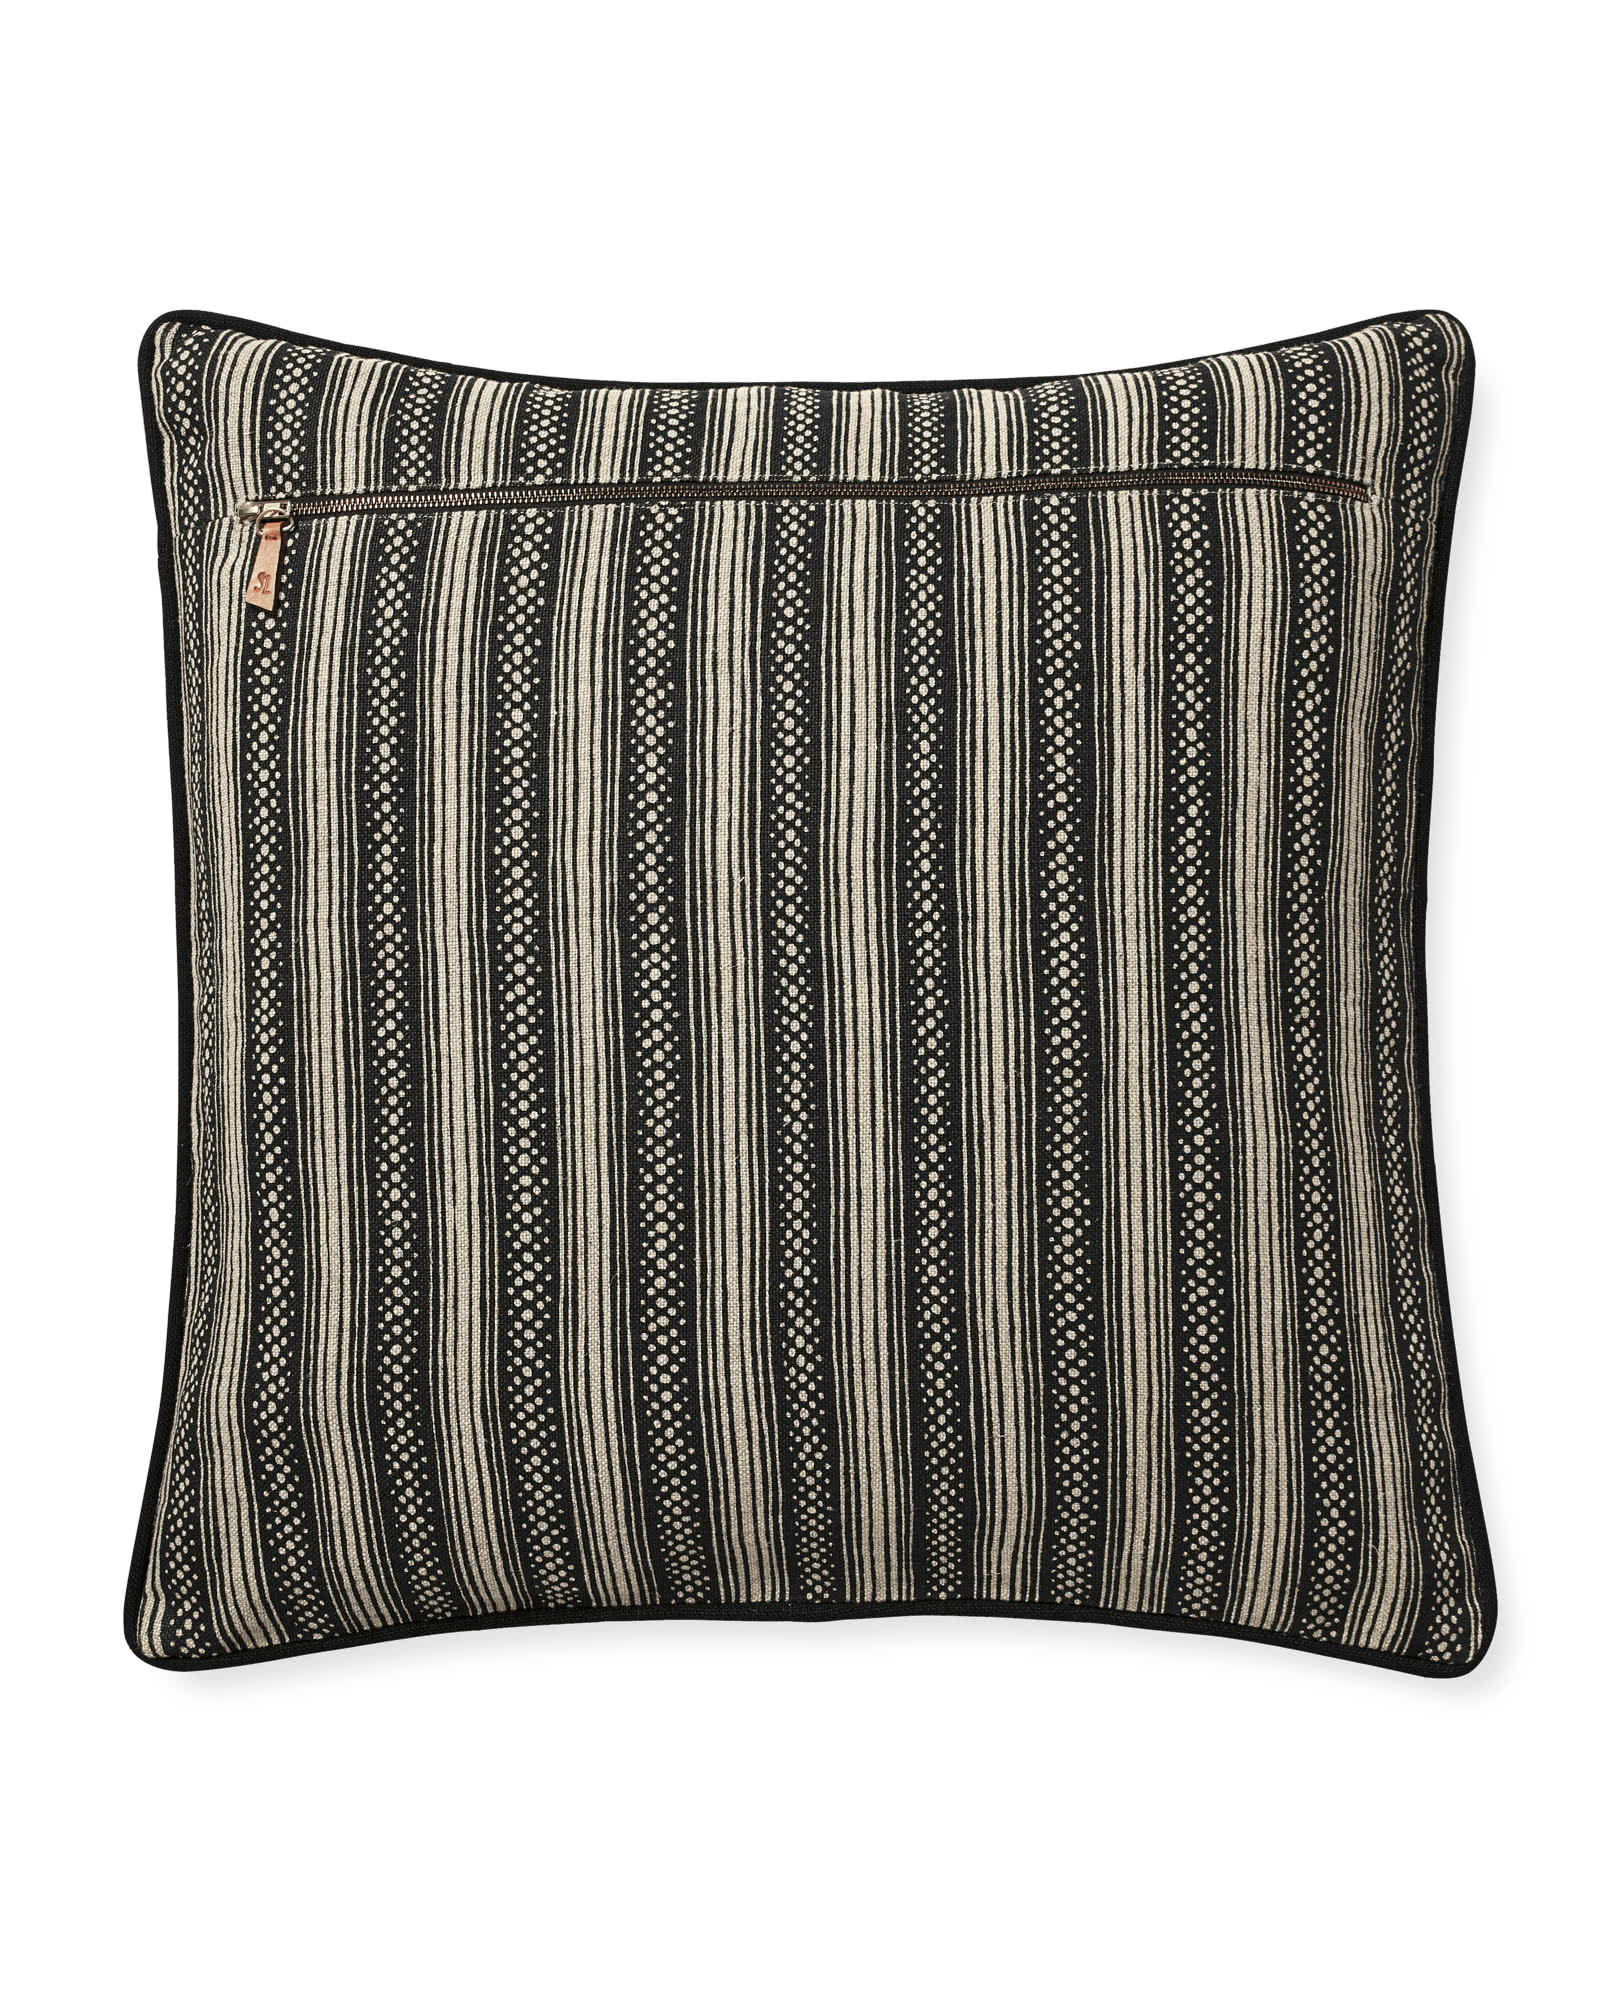 Stowe Pillow Cover, Flax/Black